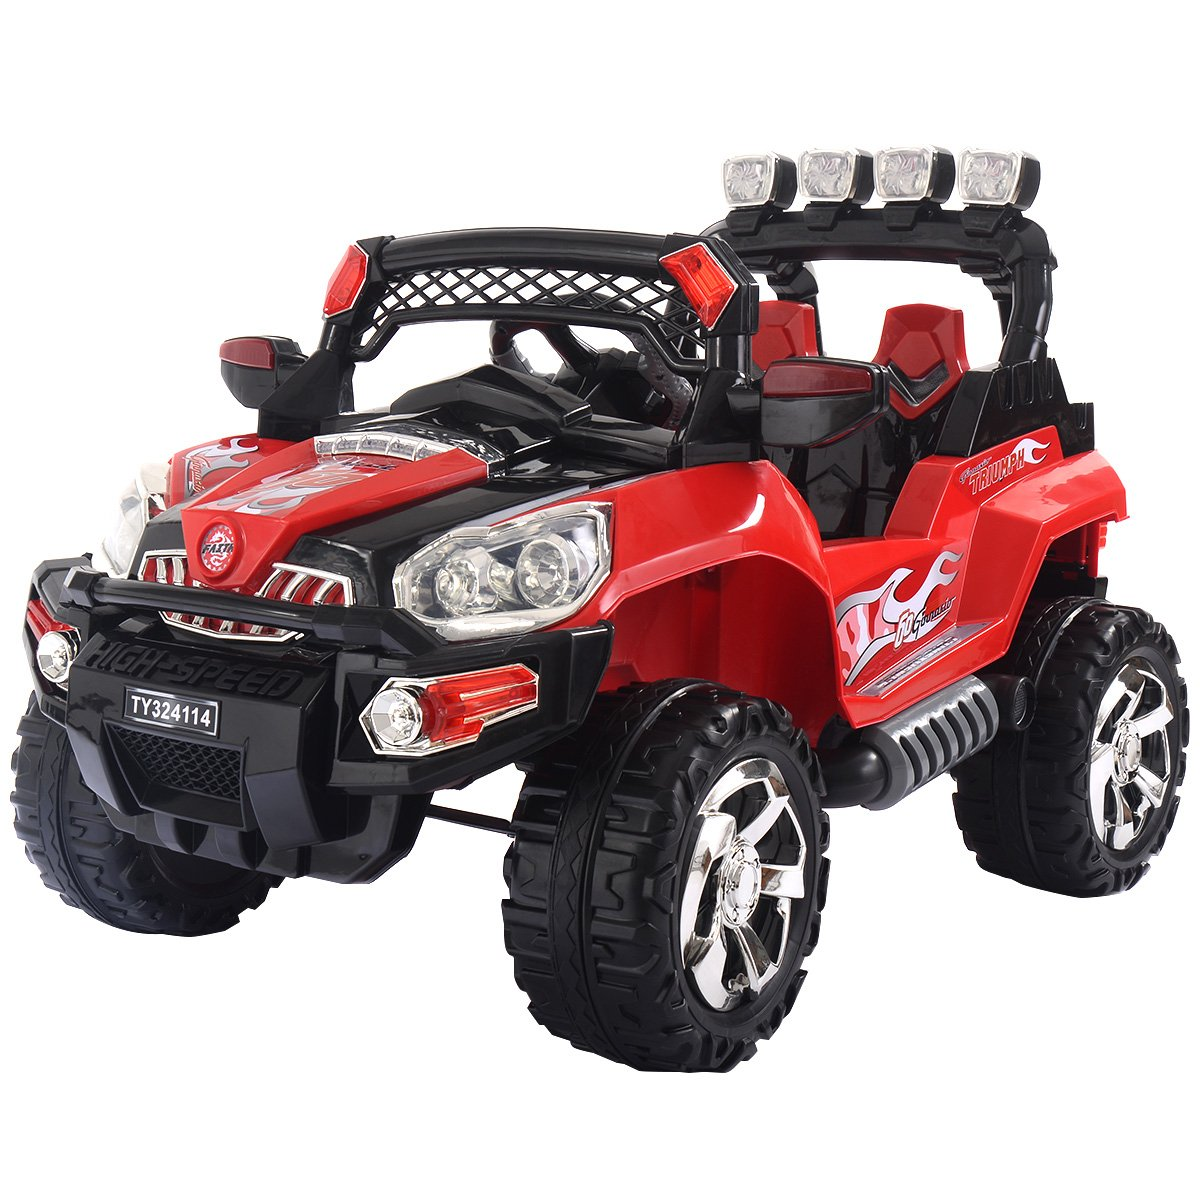 Costzon Ride On Truck, 12V Battery Powered Car, Parental Remote Control & Manual Modes Vehicle w/ Colorful LED Lights, MP3, Volume Control, Overload Protection for Kids (Red+Black) by Costzon (Image #1)